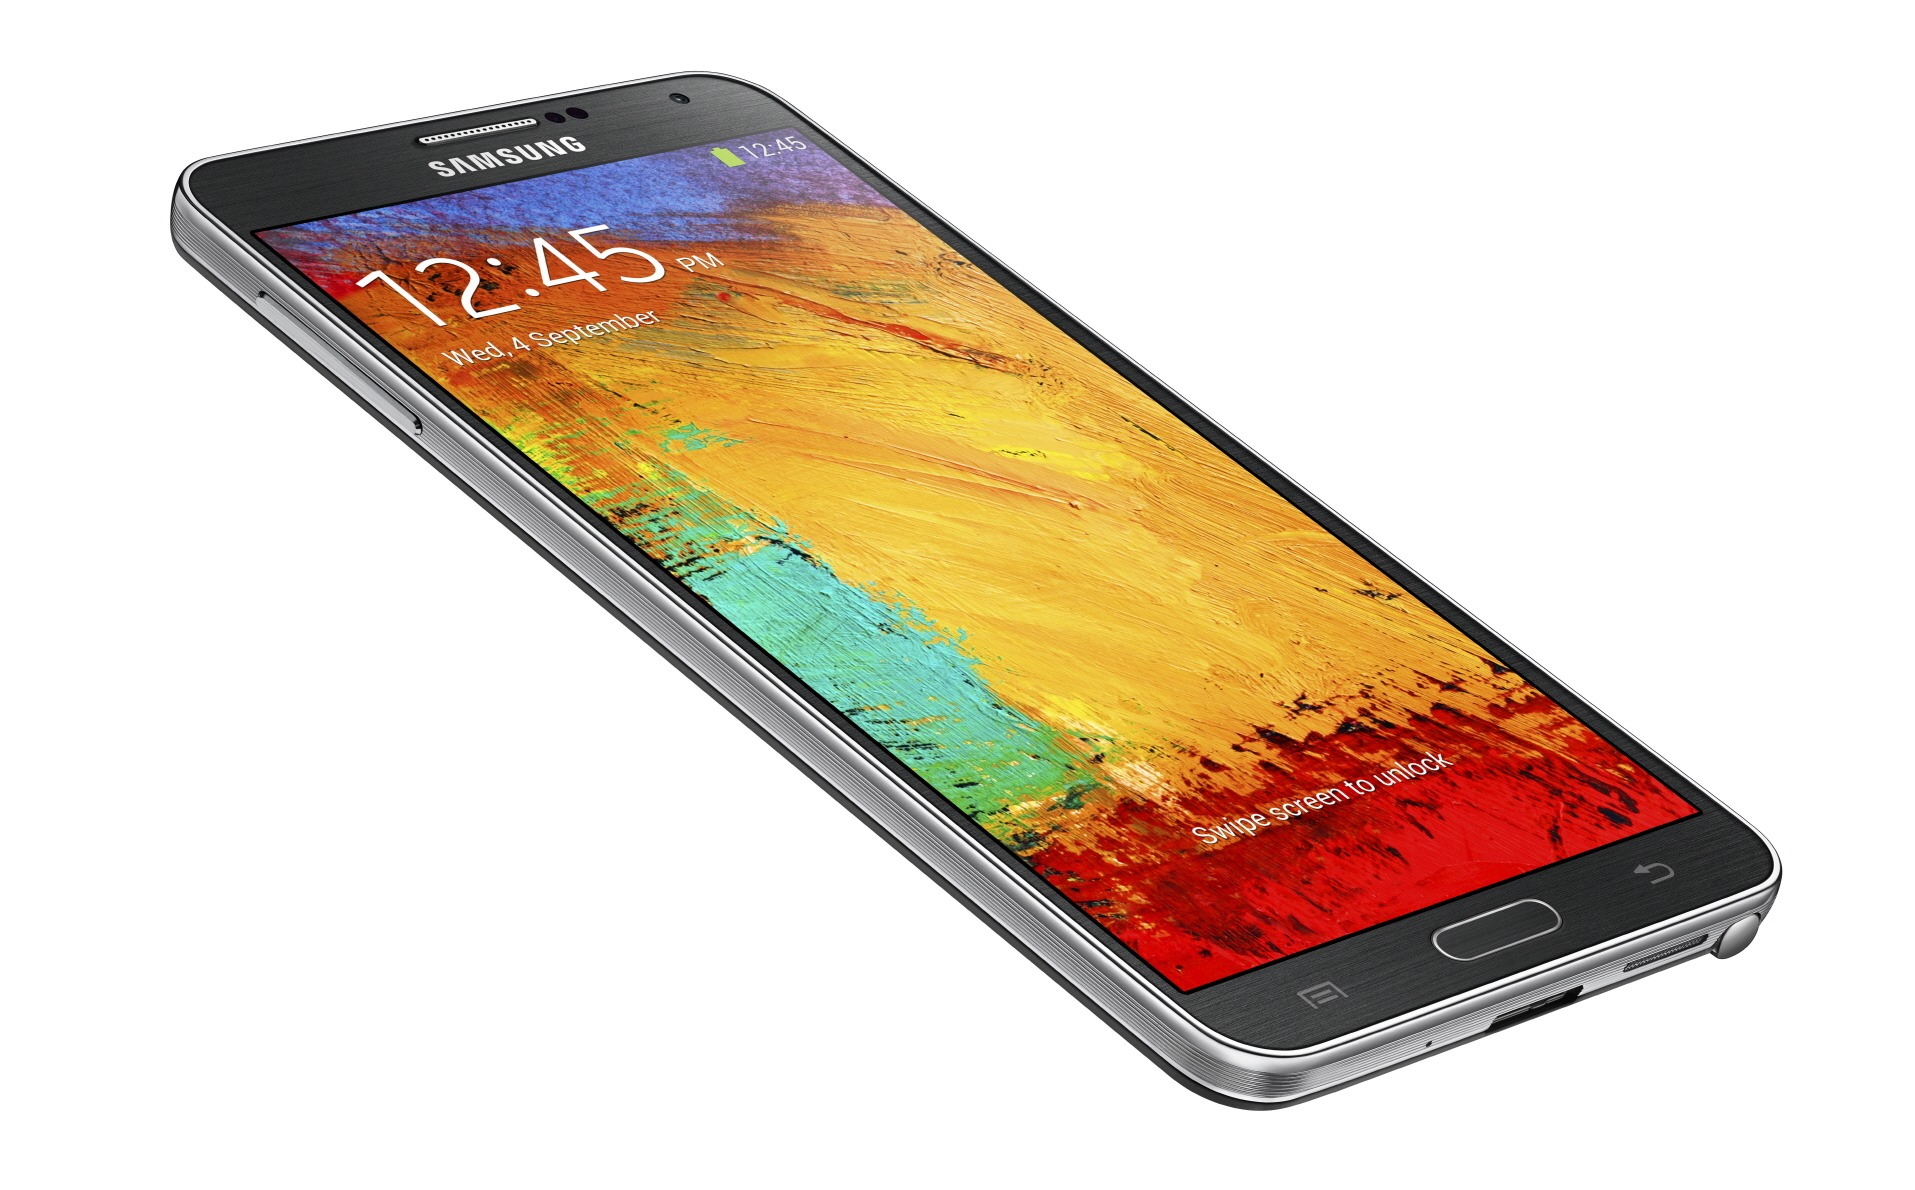 fingerprint lock kit kat update for note 3Android 442 Update Is Rolling Out To The Galaxy Note 3 On ATT GXwXiEWc